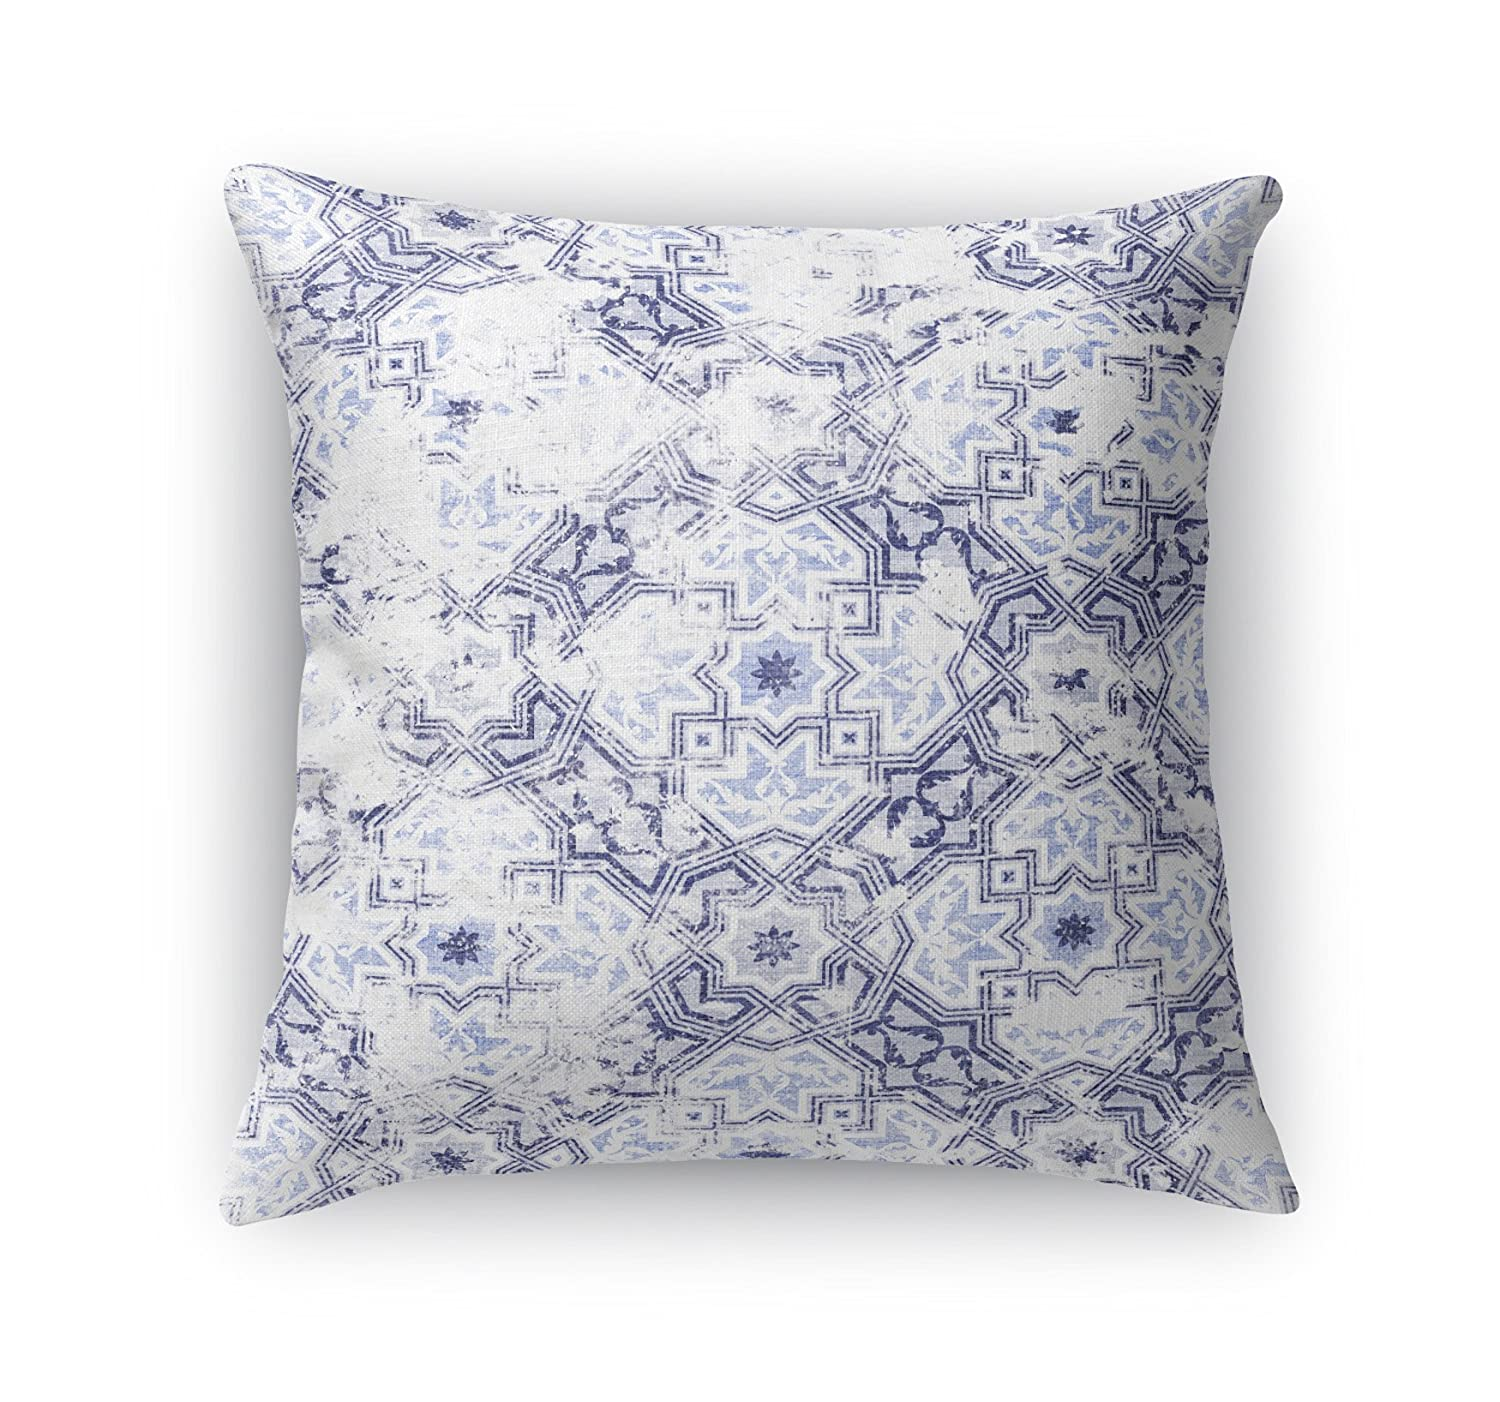 MGTAVC2025DI18 KAVKA Designs Sandoval Blue Accent Pillow, Size: 18X18X6 - - NAVAJO Collection Blue//Ivory